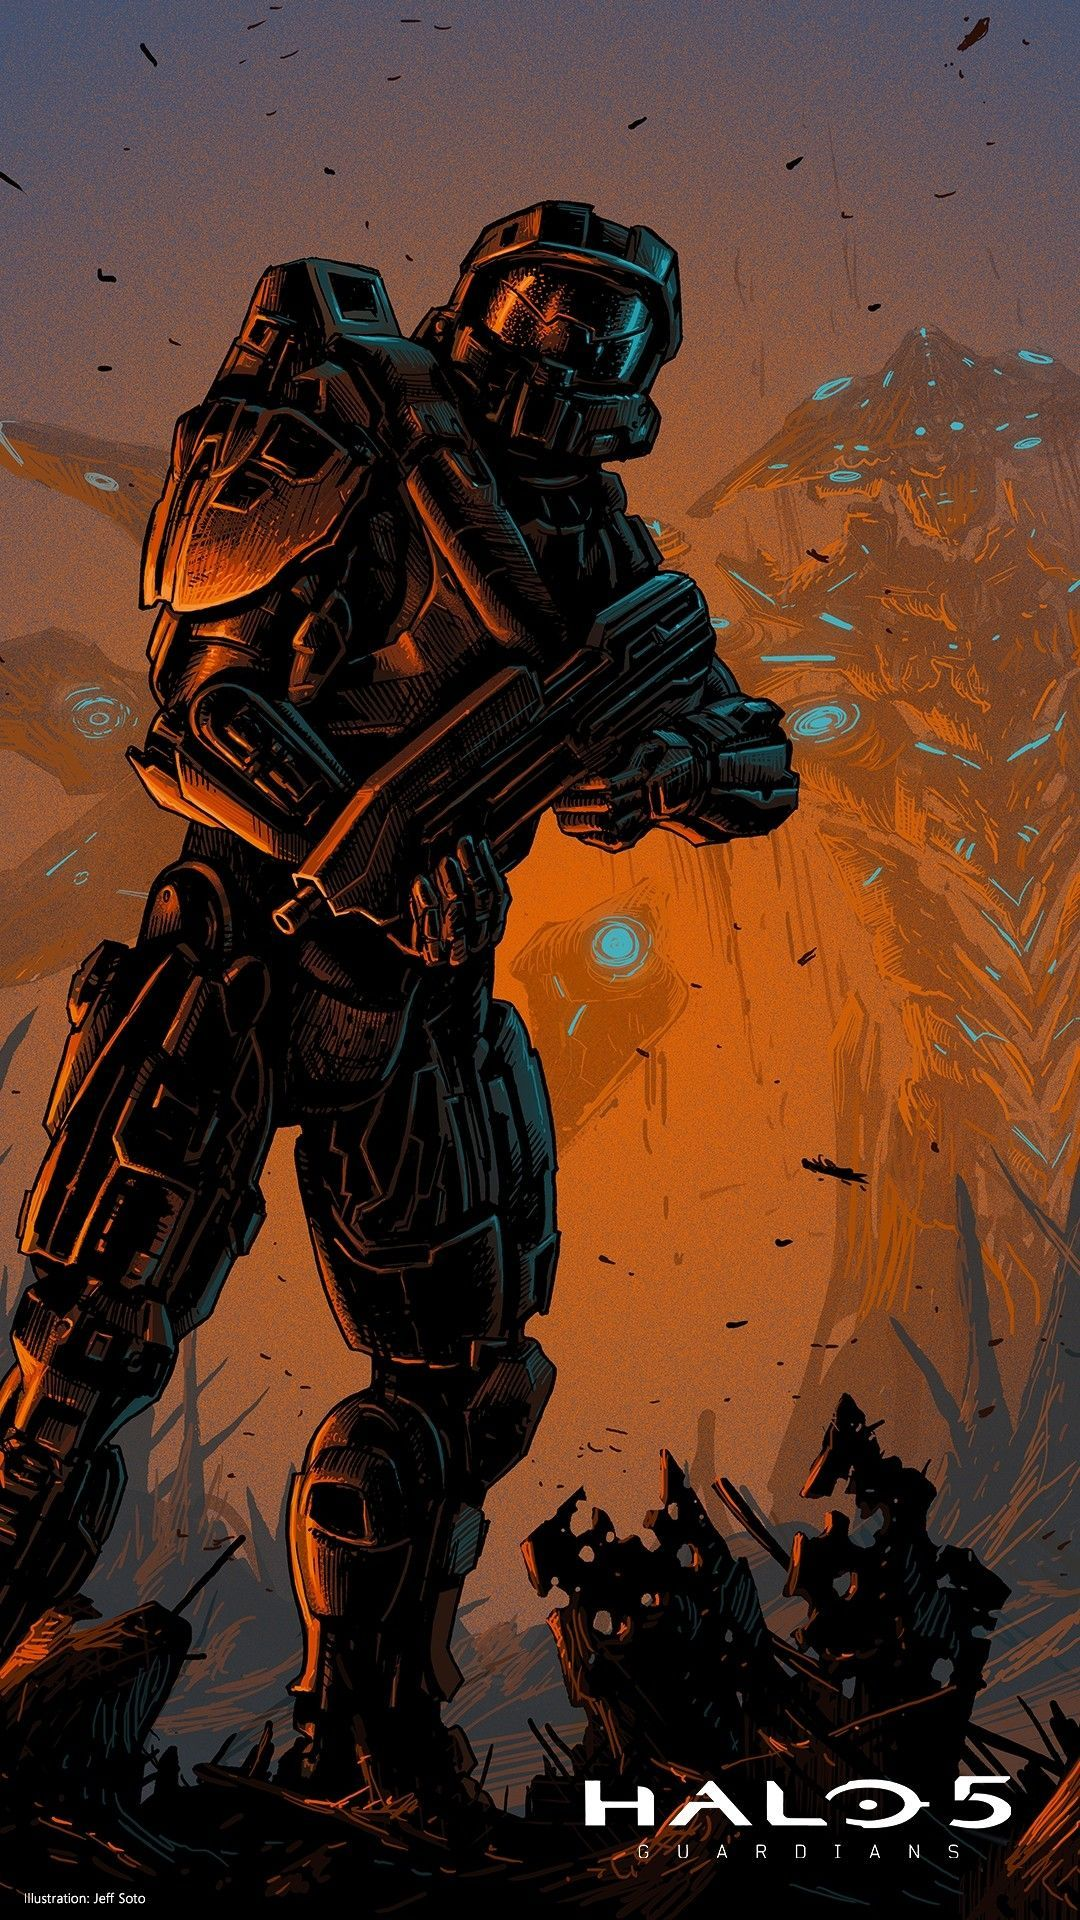 Visit Halo 5 Wallpaper Android On High Definition Wallpaper At Rainbowwallpaper Info Pin If You Like It Iphone Halo Drawings Halo 5 Guardians Halo Guardians